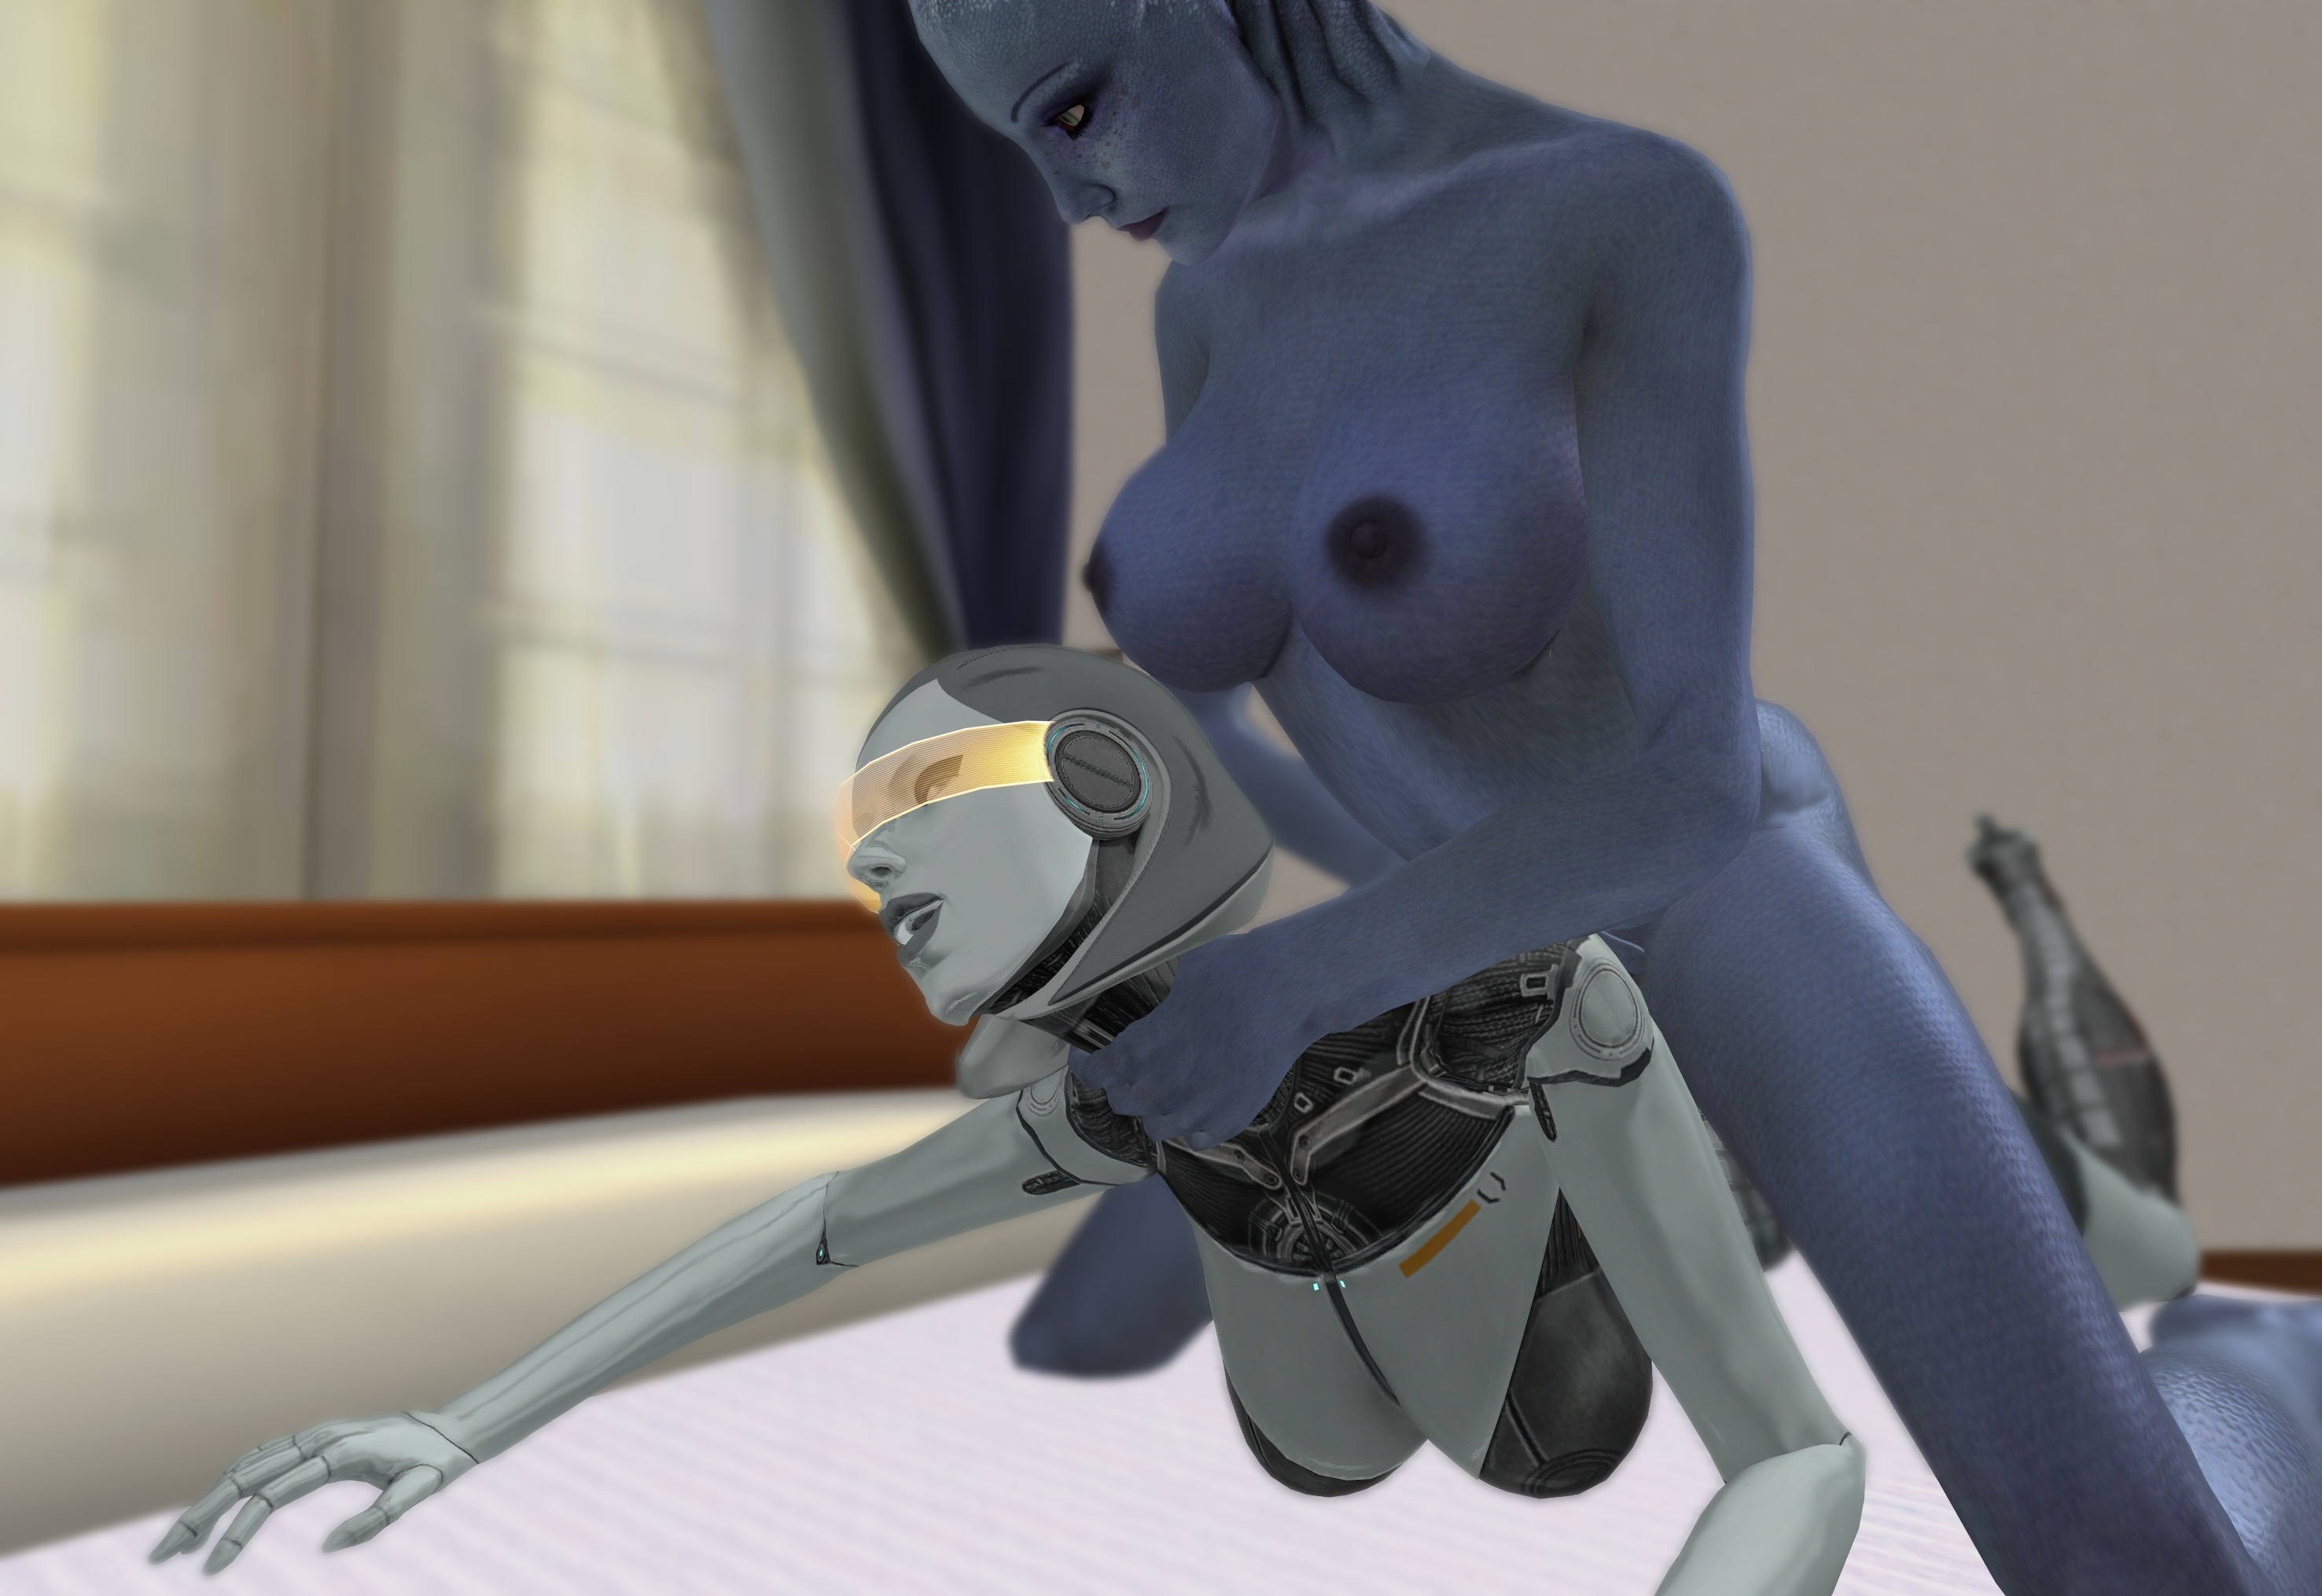 Mass effect henti nude videos